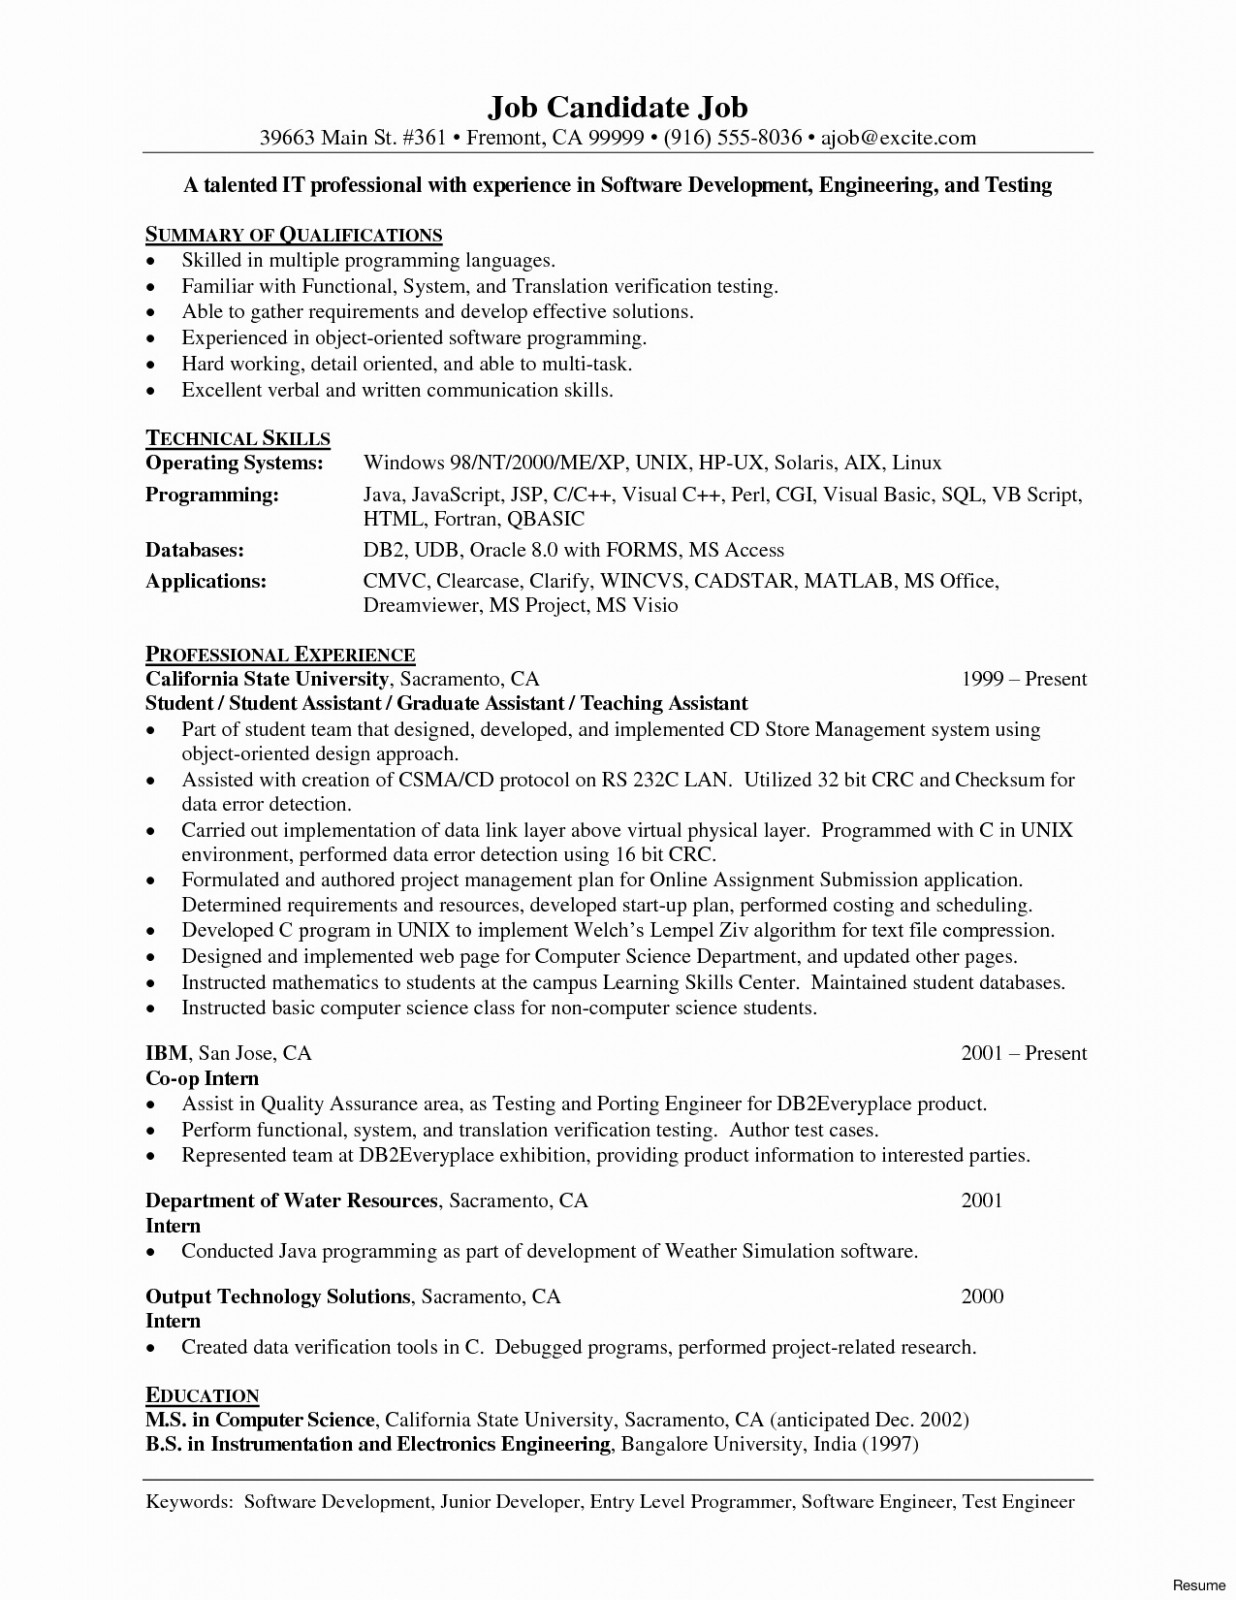 Computer Engineering Resume Template - Puter Engineering Resume Elegant 18 Puter Science Resume Template